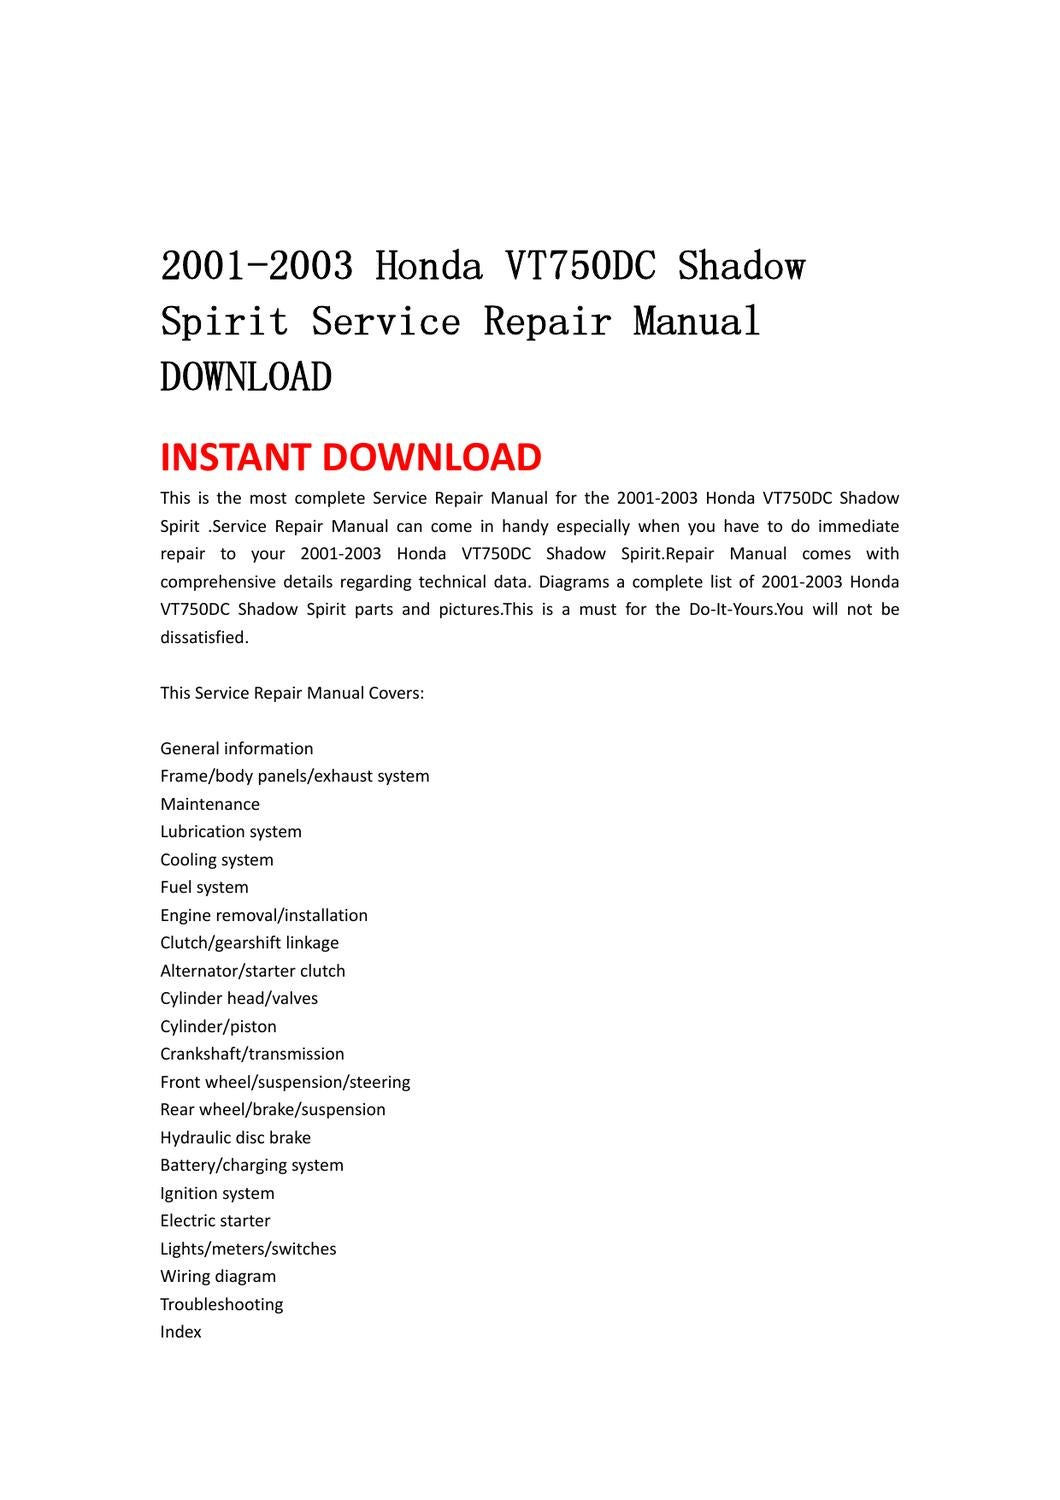 2001-2003 Honda VT750DC Shadow Spirit Service Repair Manual DOWNLOAD by lin  leiww - issuu